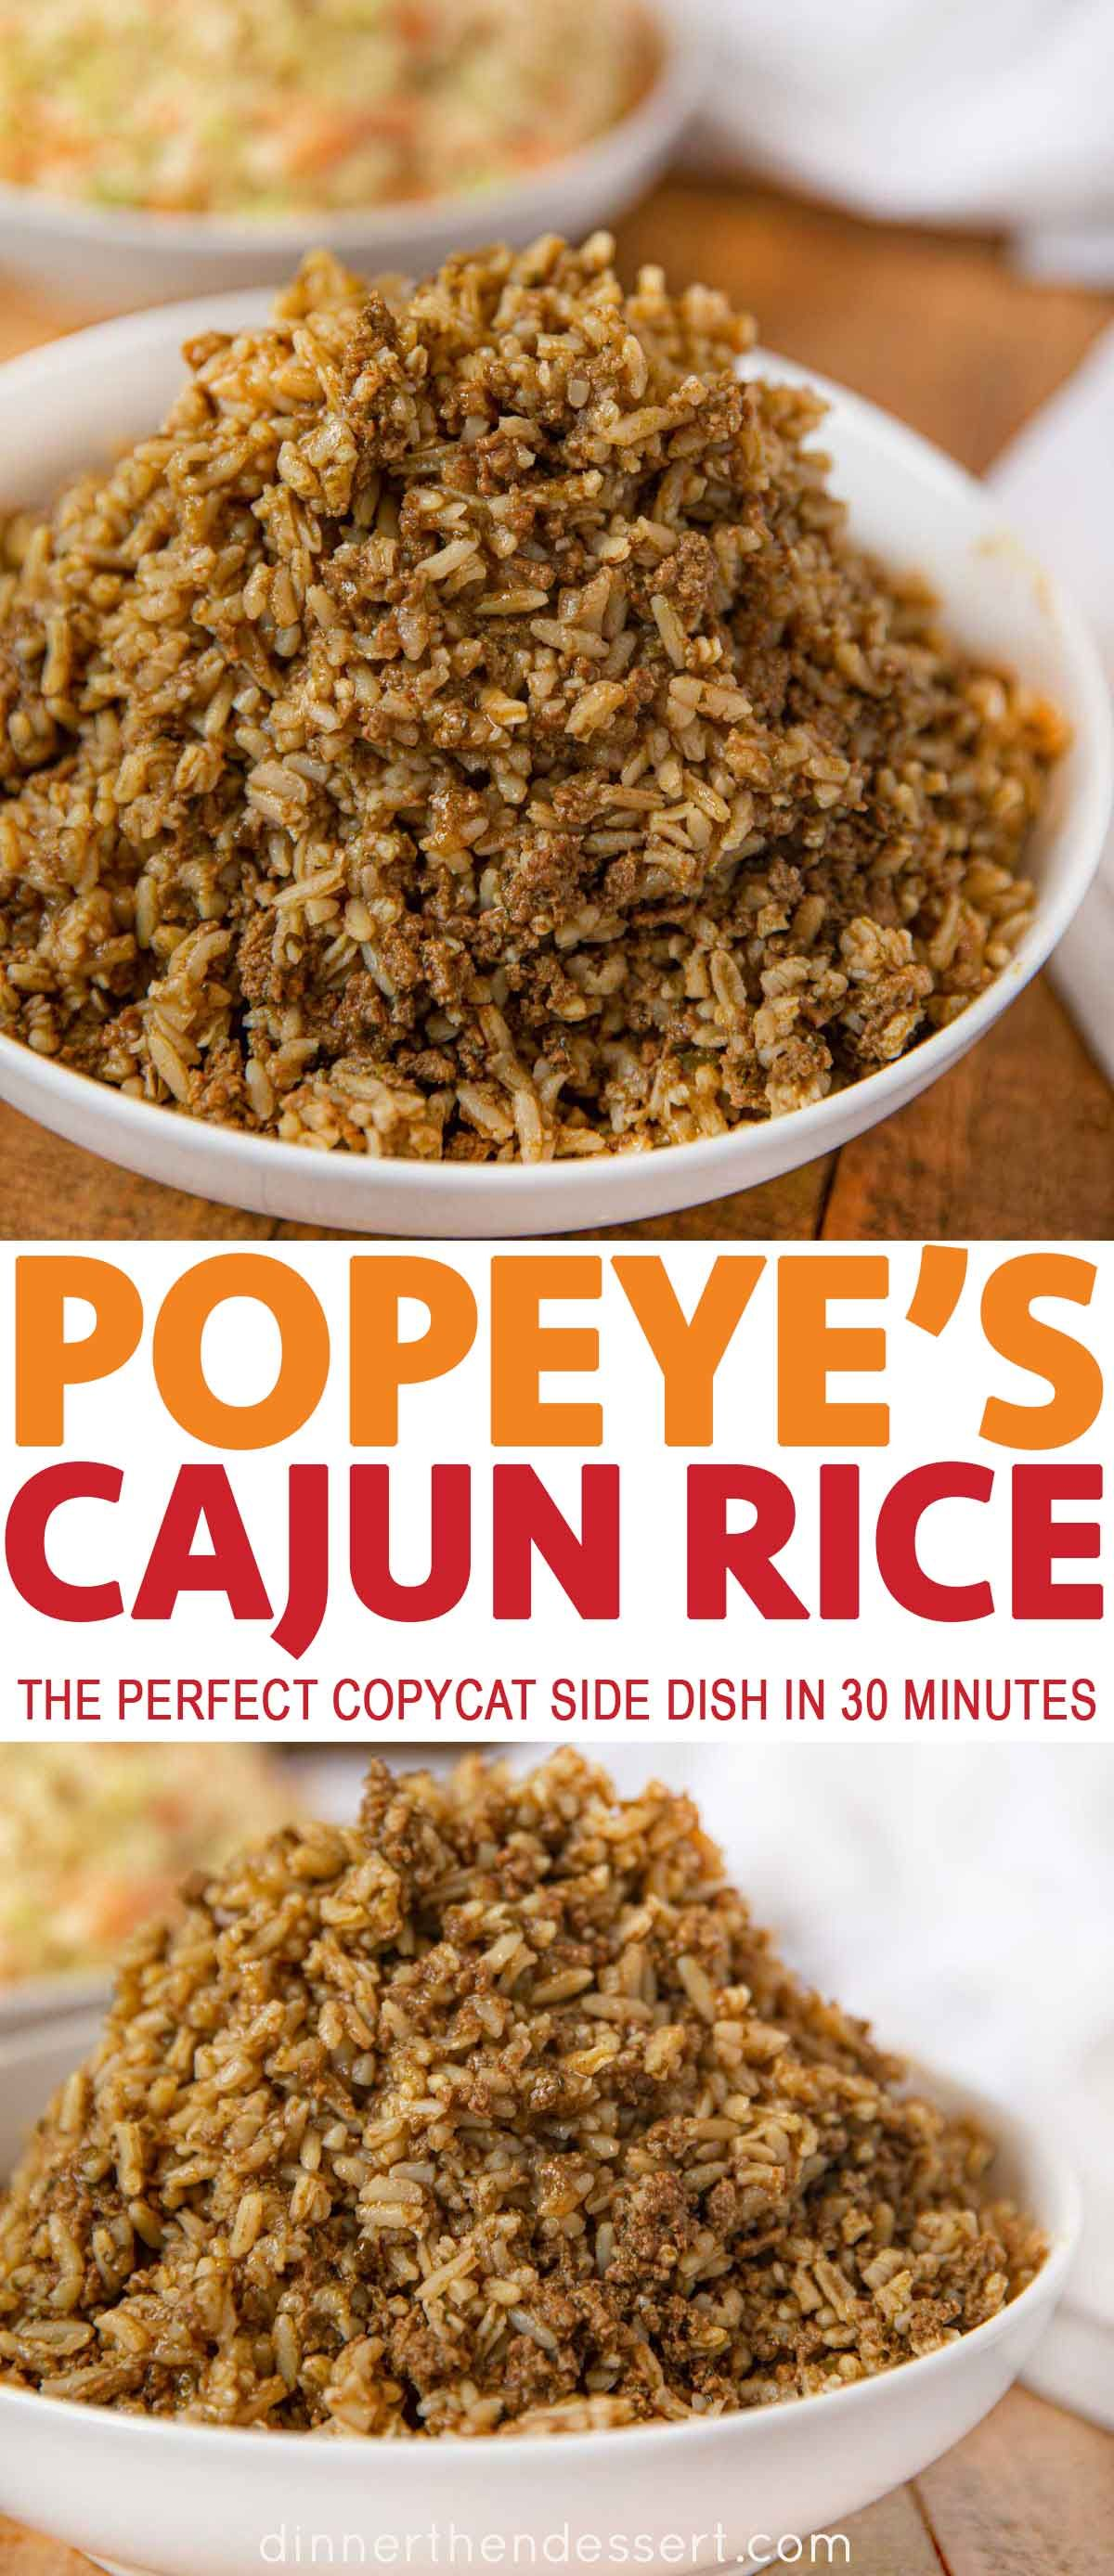 Popeye's Cajun Rice Recipe (Copycat) - Dinner, then Dessert